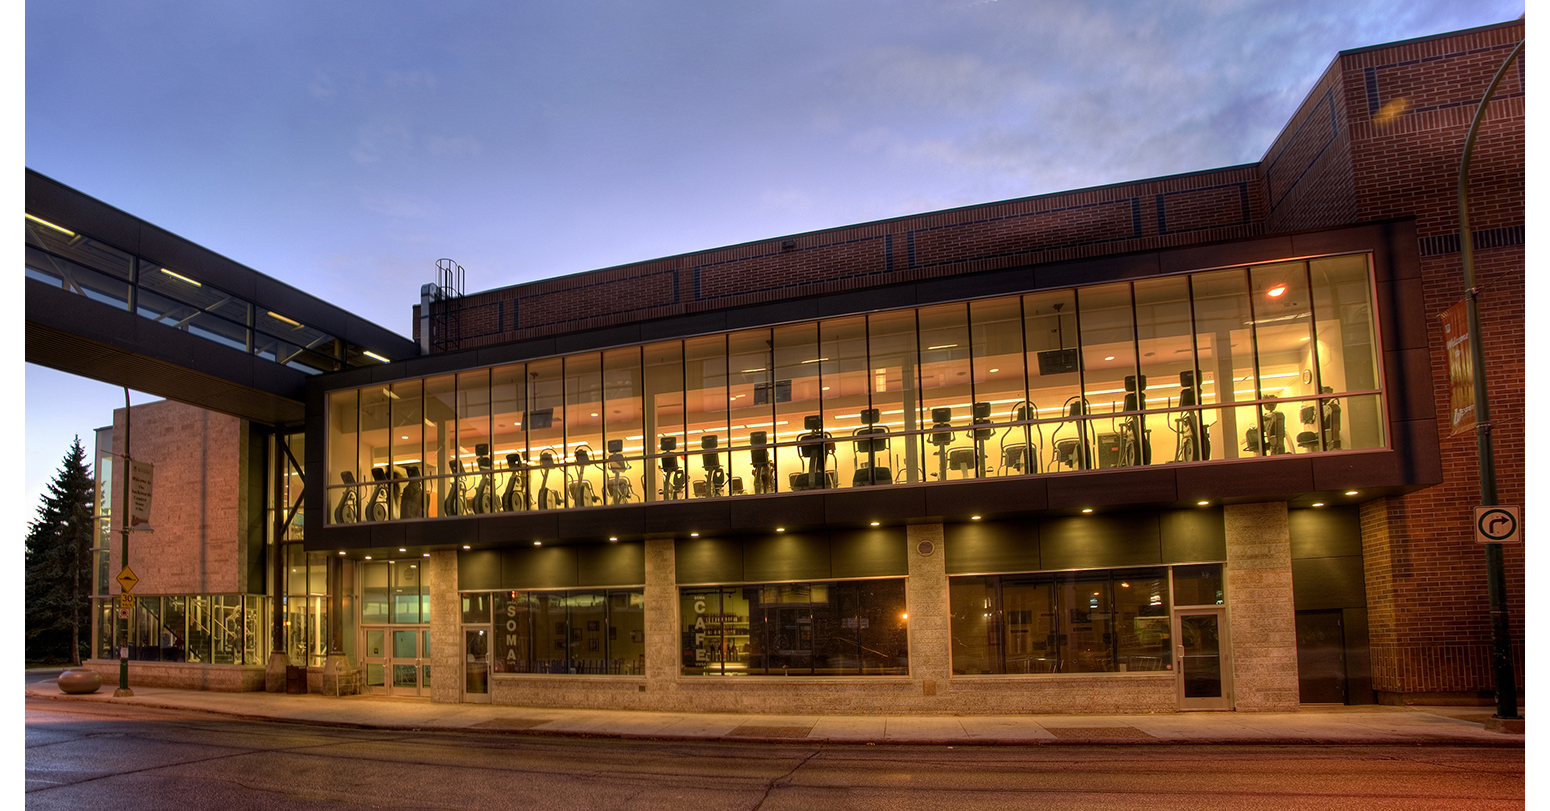 Duckworth Centre, exterior photo of building at dusk / Photo: Bryan Scott